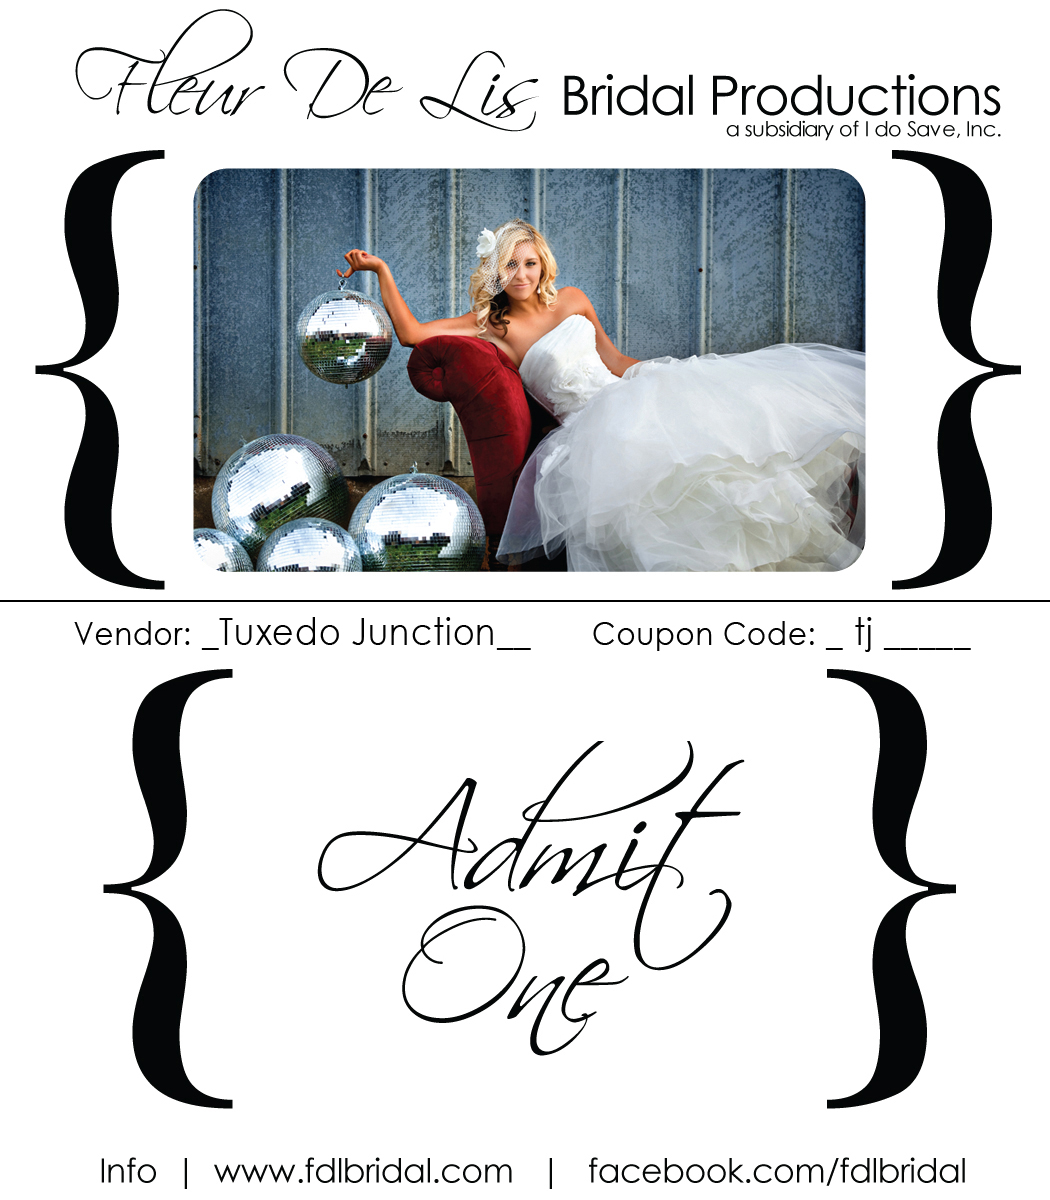 Tuxedo junction dallasft worth tuxedo junction is very excited to be a part of the upcoming bridal shows hosted by fleur de lis bridal productions we would like to invite you to visit stopboris Images